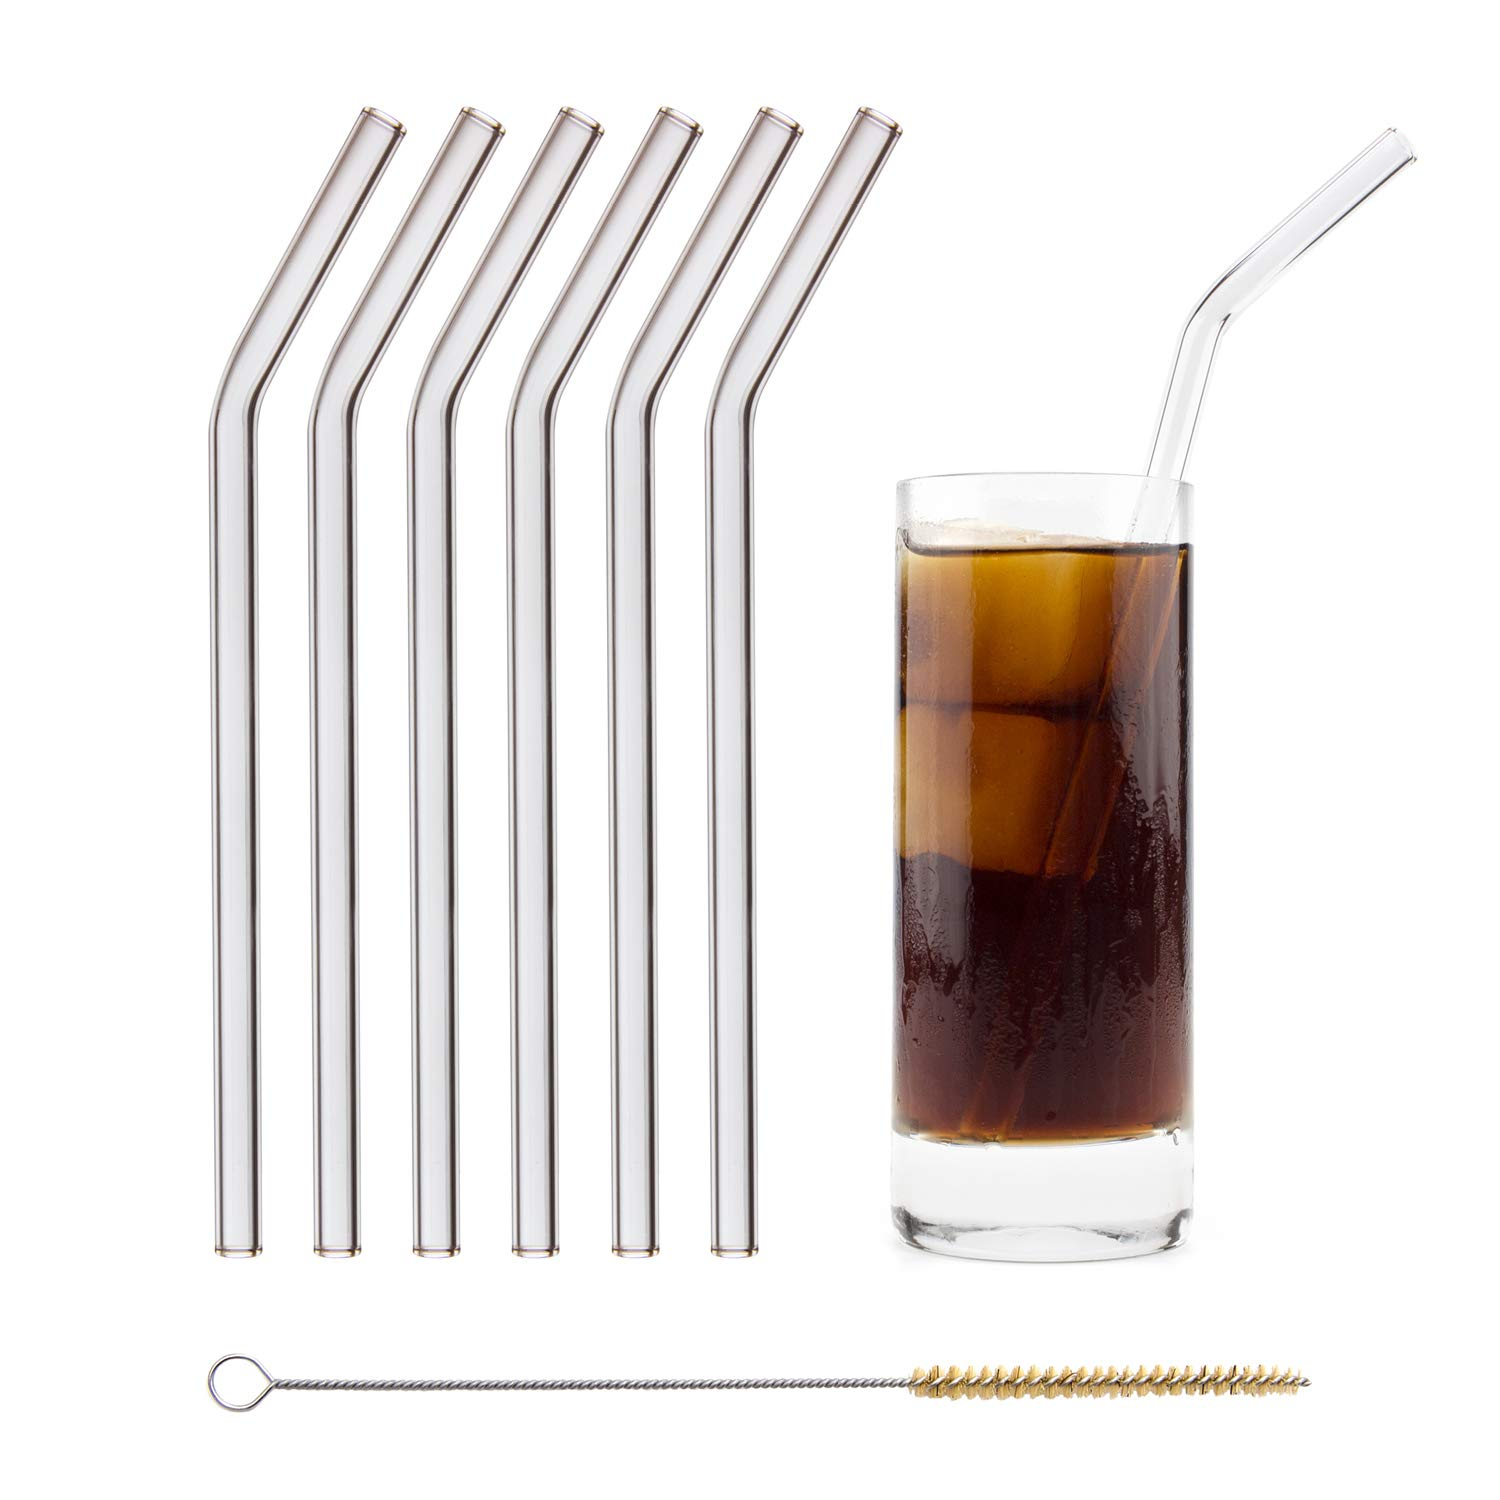 HALM Glass Straws - 6 Reusable Drinking Straws + Plastic-Free Cleaning Brush - Made in Germany - Dishwasher Safe - Eco-Friendly - 23 cm (9 in) x 0.9 cm - Bent - Perfect for Smoothies, Cocktails by HÅLM